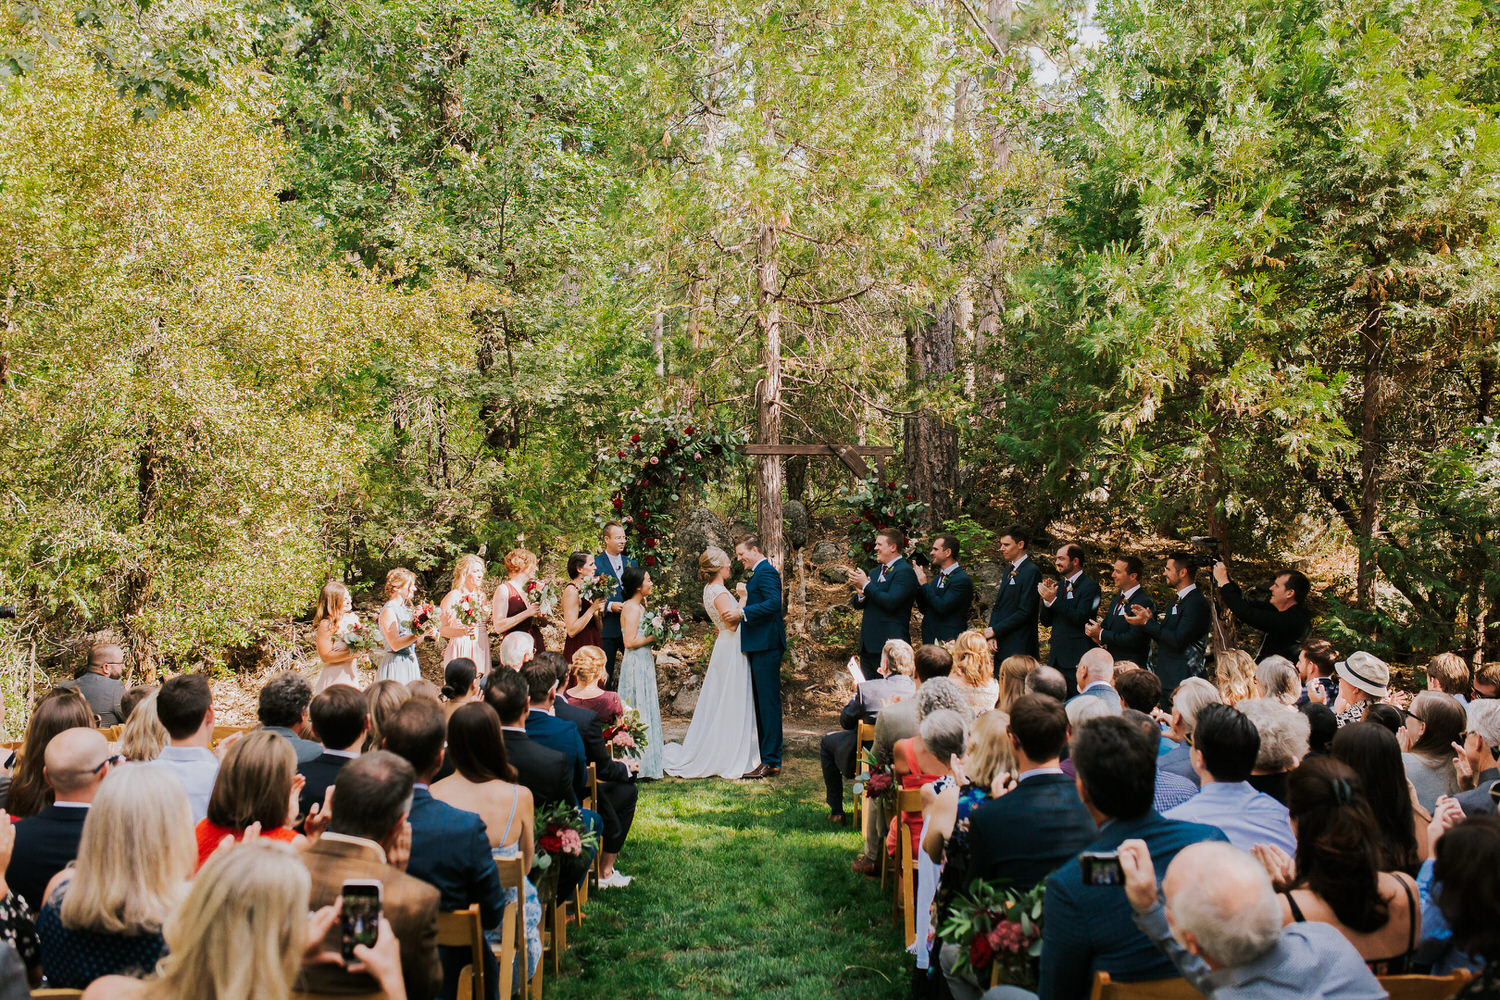 bride and groom celebrate being married in ceremony